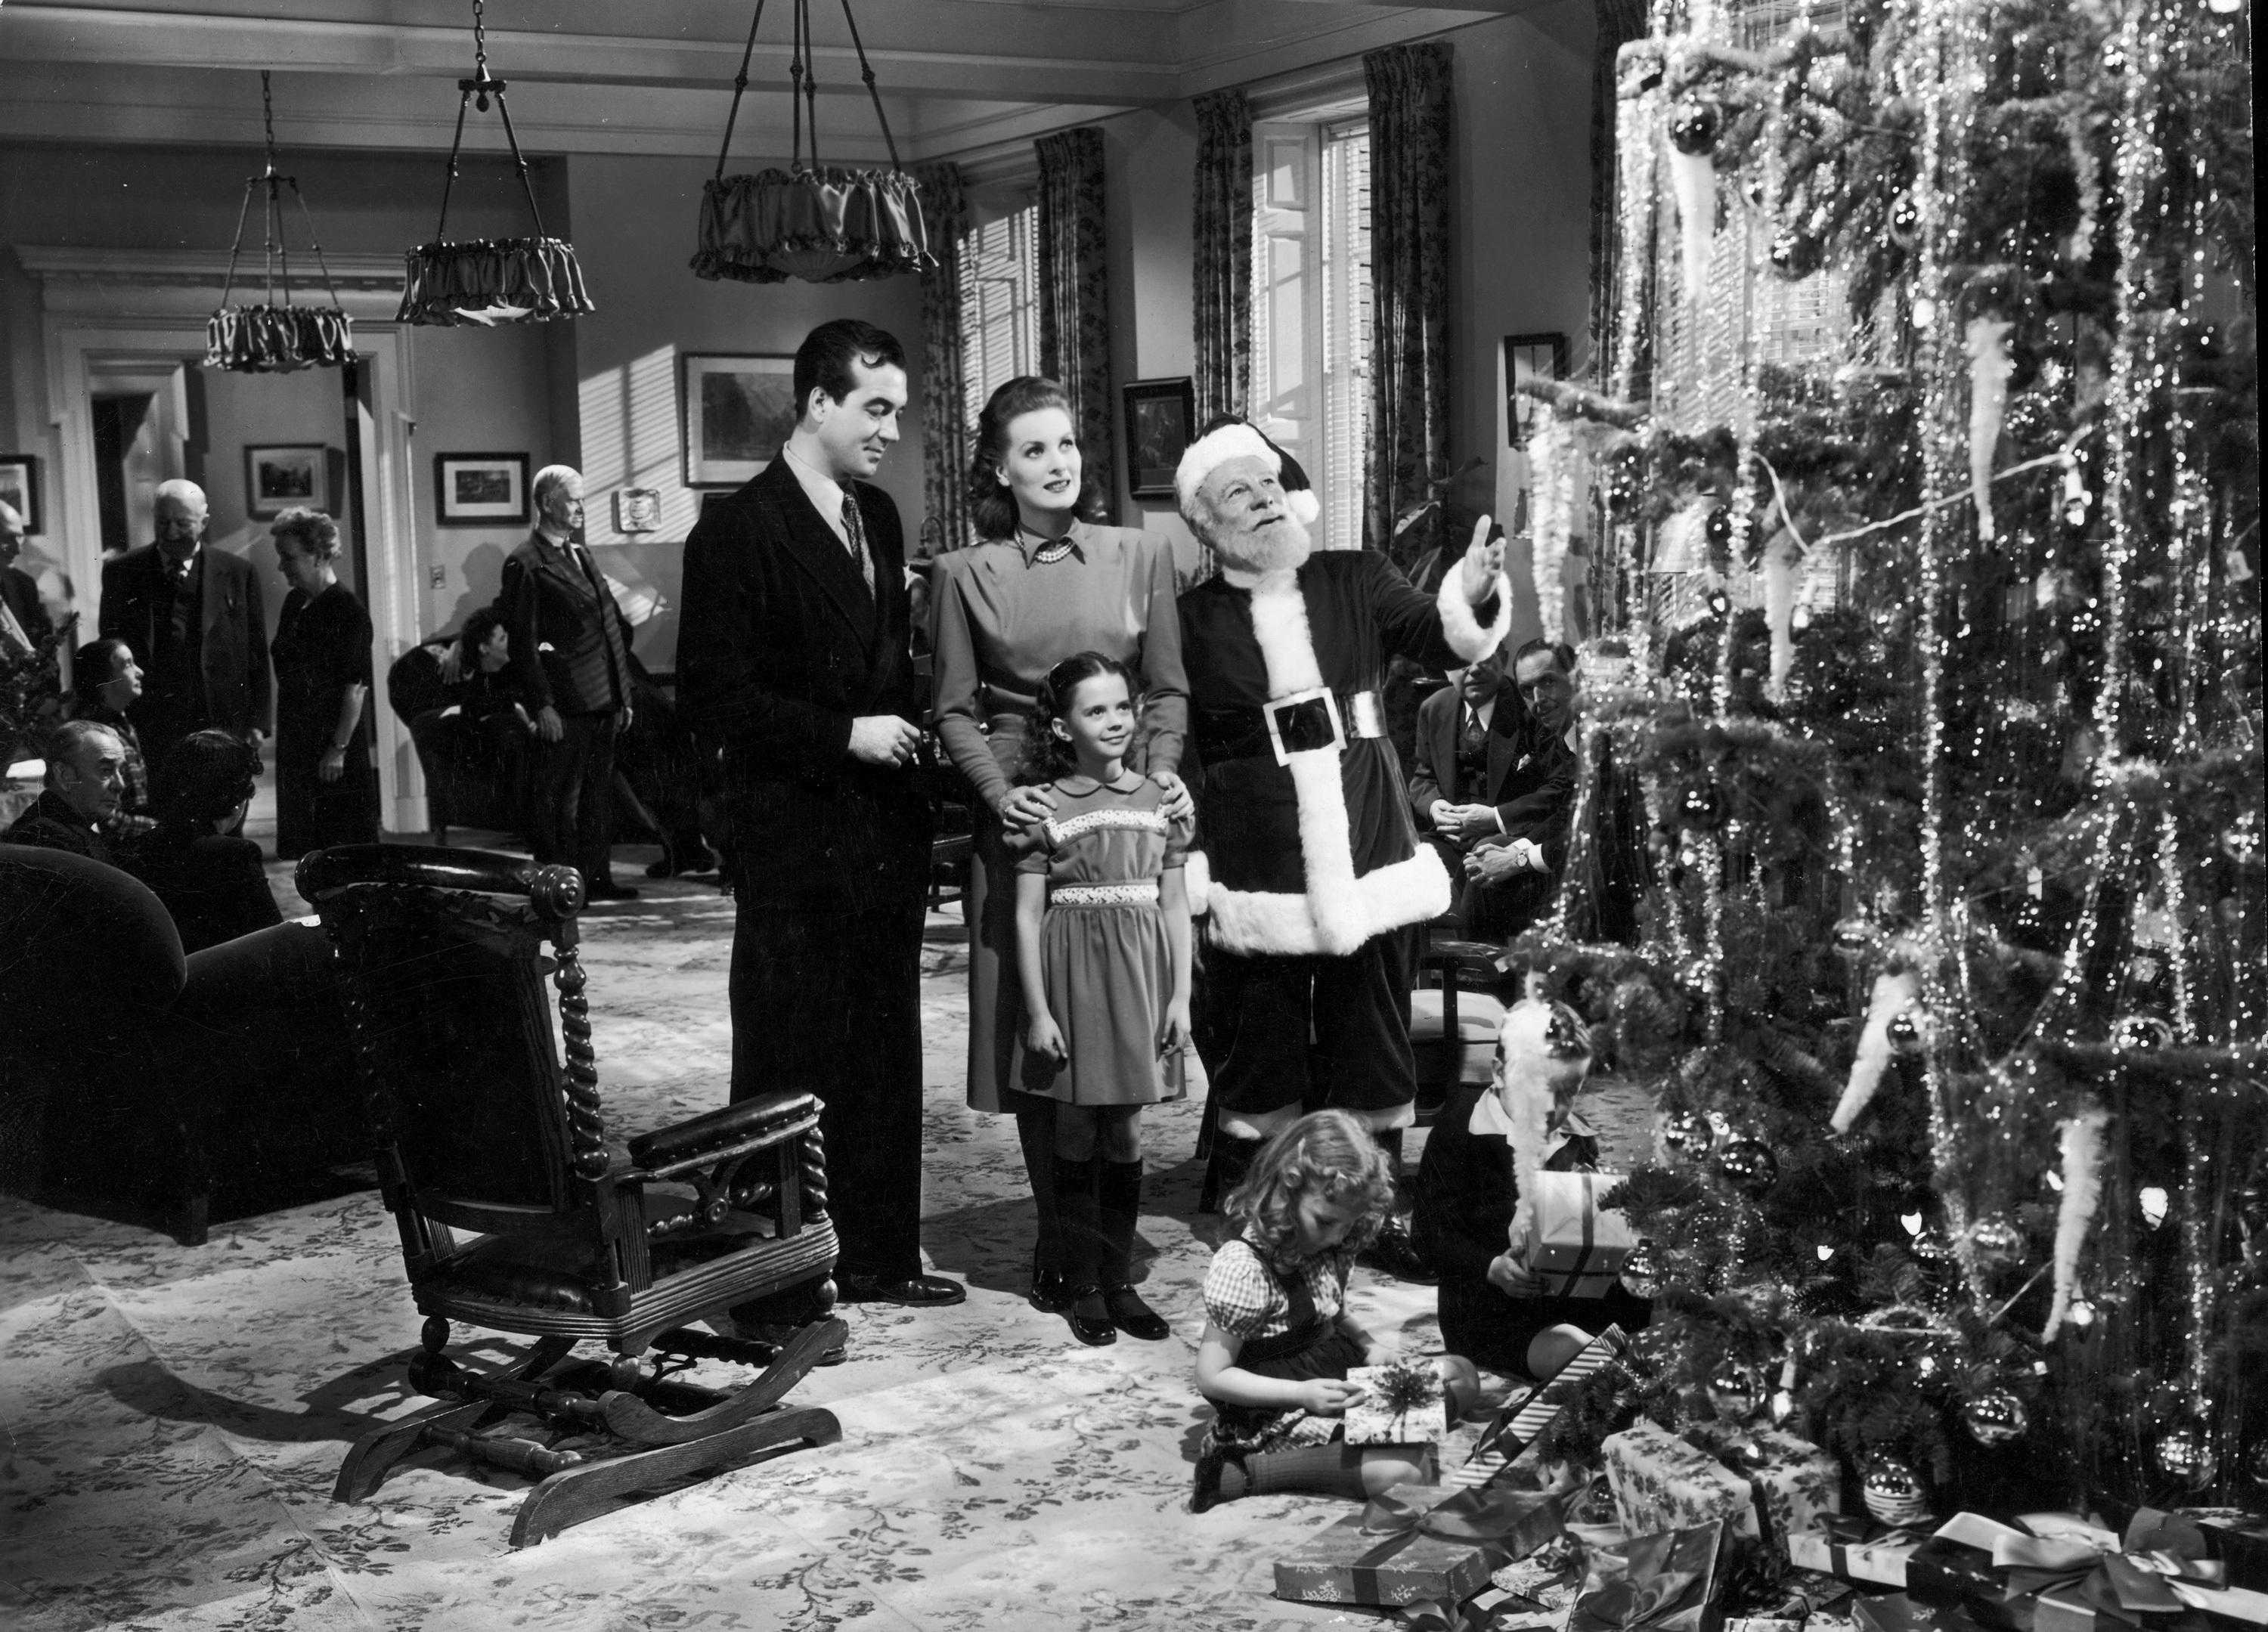 Weihnachtsfilm Oh Tannenbaum.Miracle On 34th Street An Old Holiday Movie For Modern Times